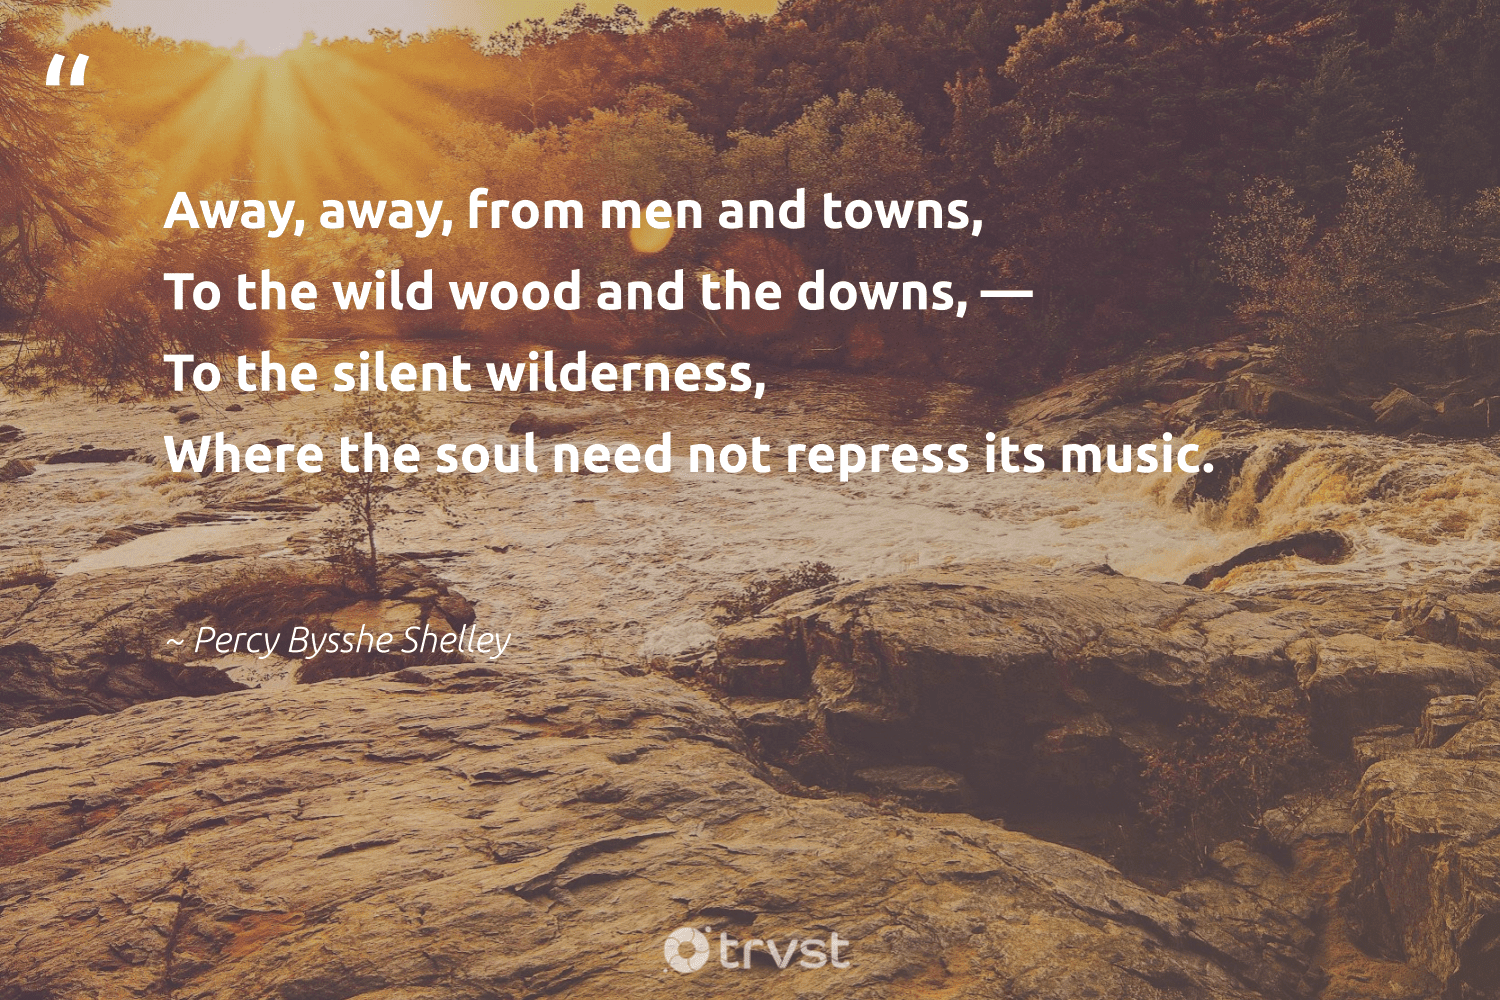 """Away, away, from men and towns, To the wild wood and the downs, — To the silent wilderness, Where the soul need not repress its music.""  - Percy Bysshe Shelley #trvst #quotes #deforestation #wood #trees #gogreen #naturelovers #planetearthfirst #treeplanting #eco #sustainability #bethechange"